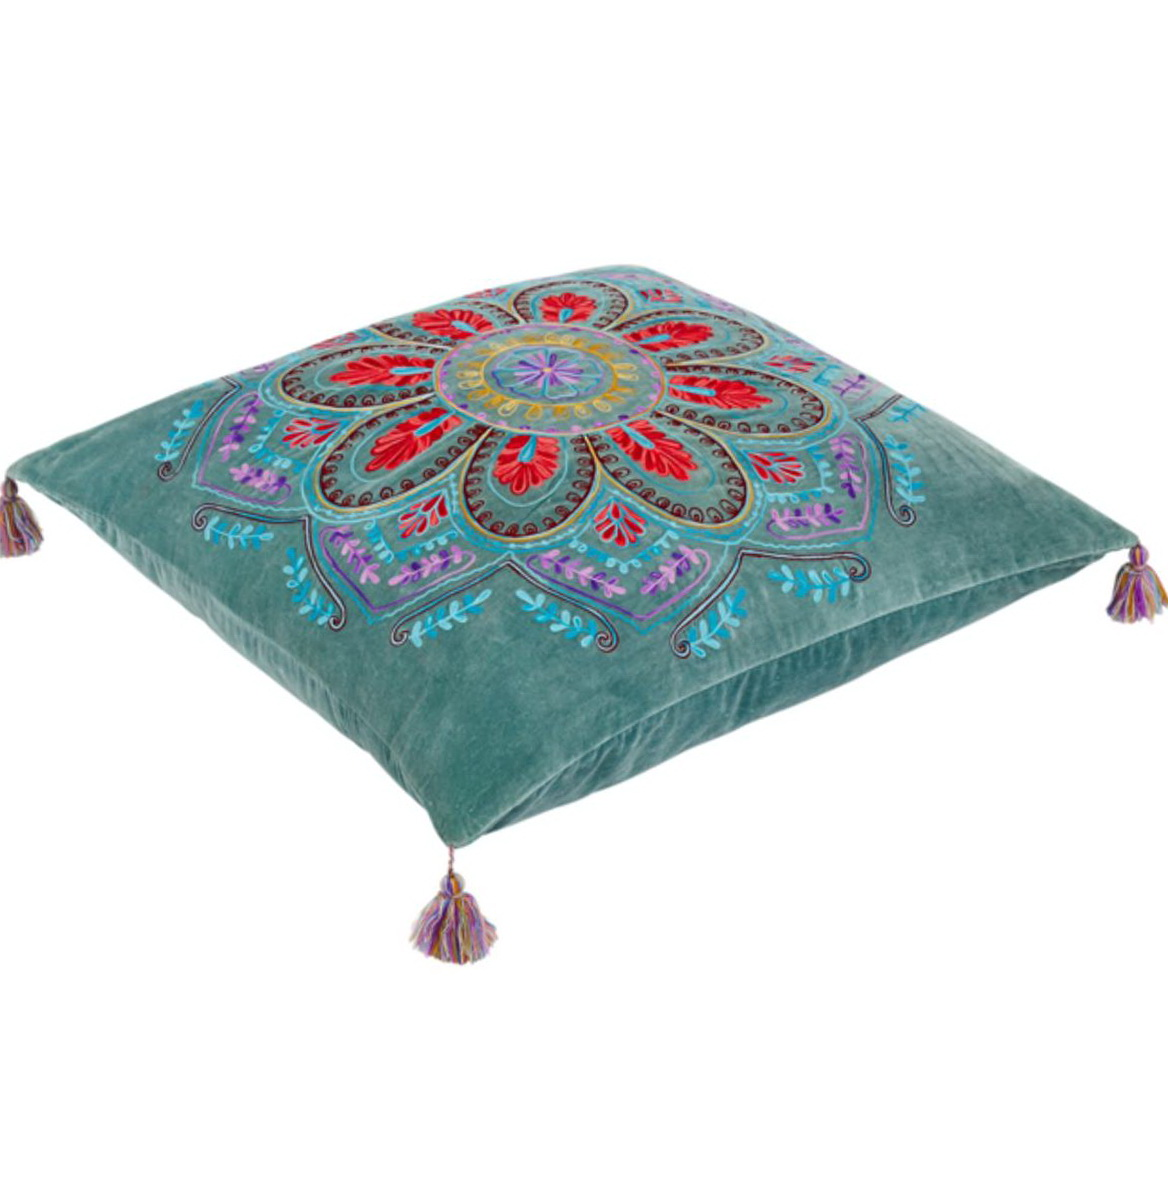 Moroccan floor cushion seating home design ideas for Floor cushion seating ideas